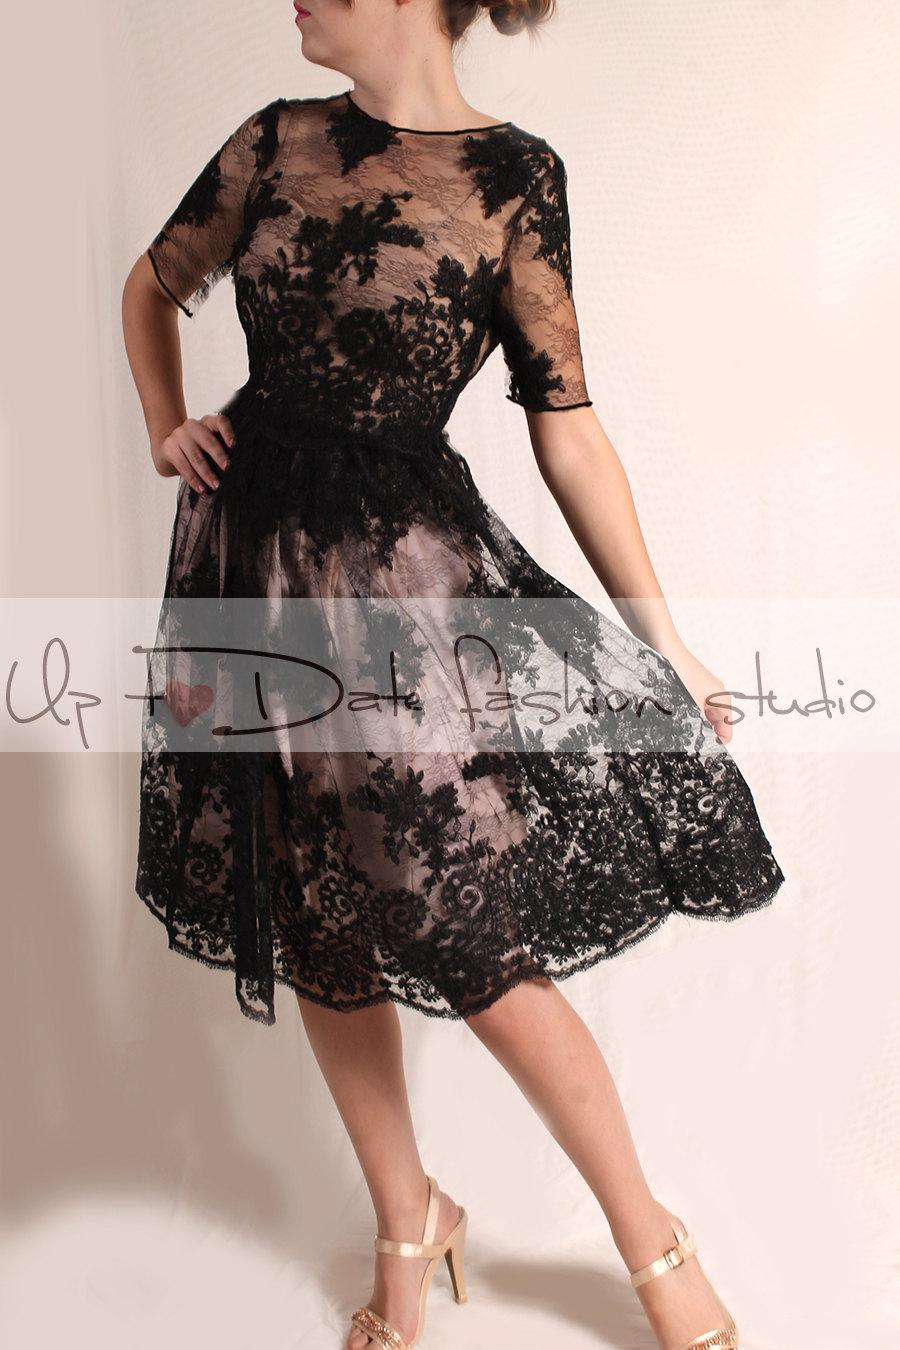 Boda - Wedding party black /knee length /lace dress/ 3/4 Sleeves /open back/ Bridal Gown